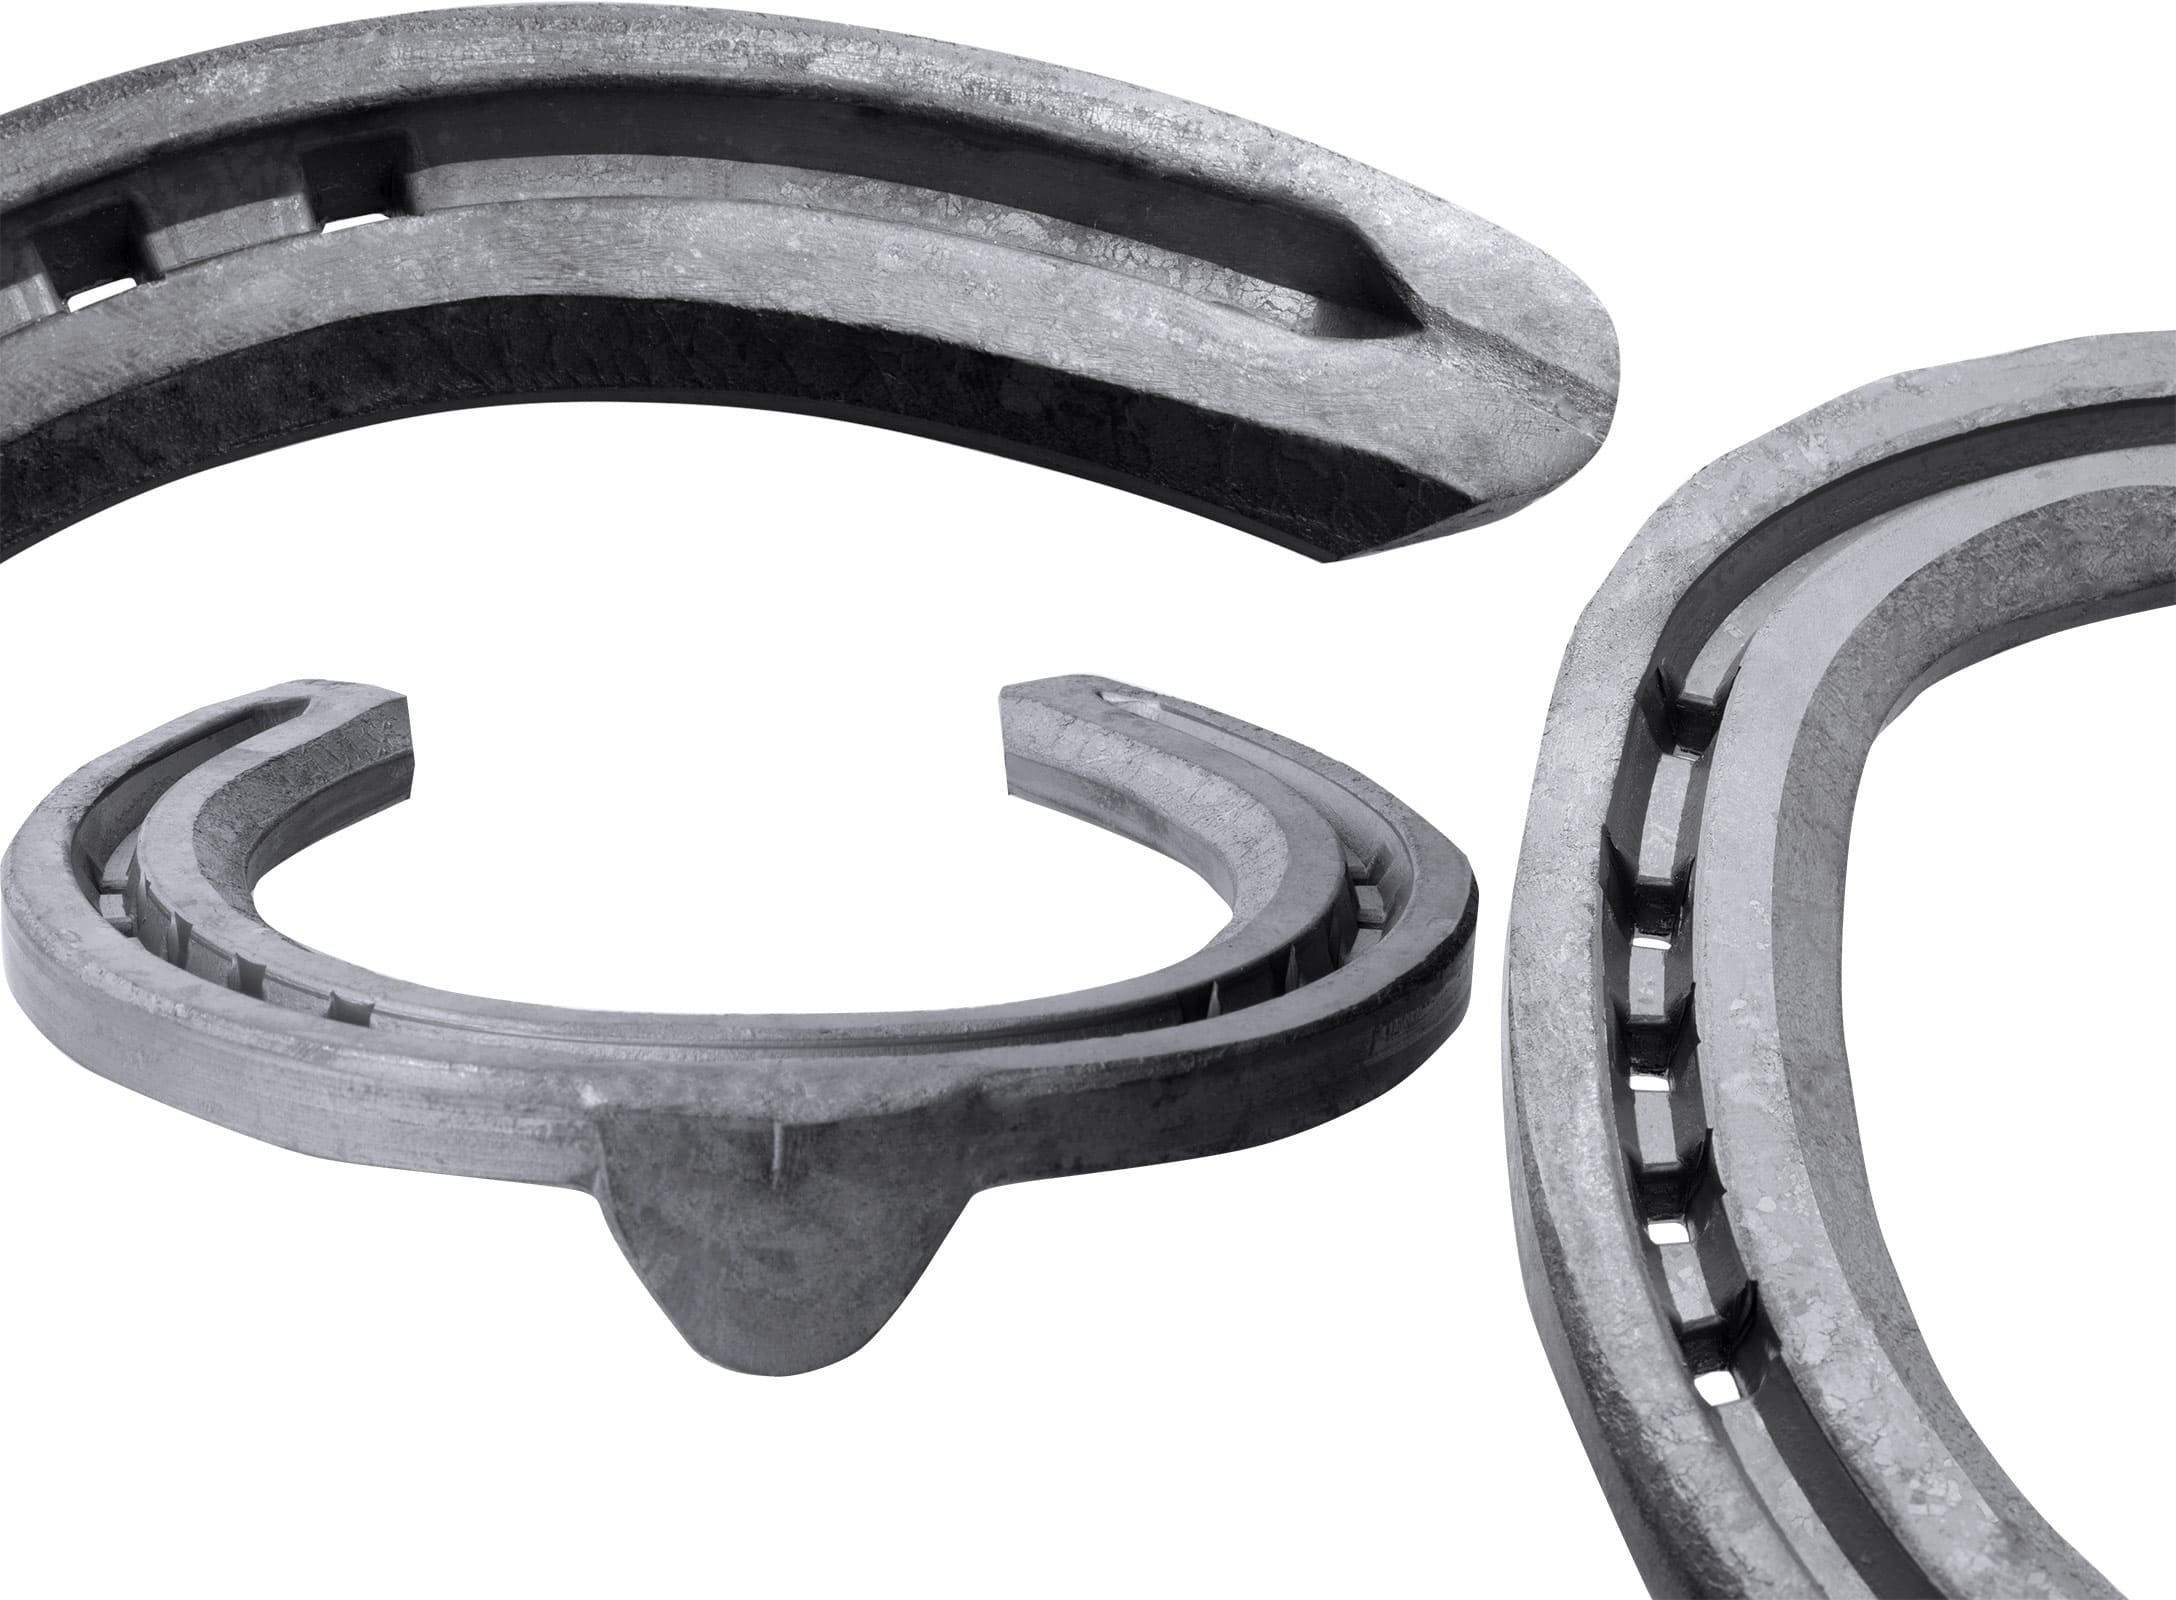 Mustad LiBero Concave horseshoes, product details